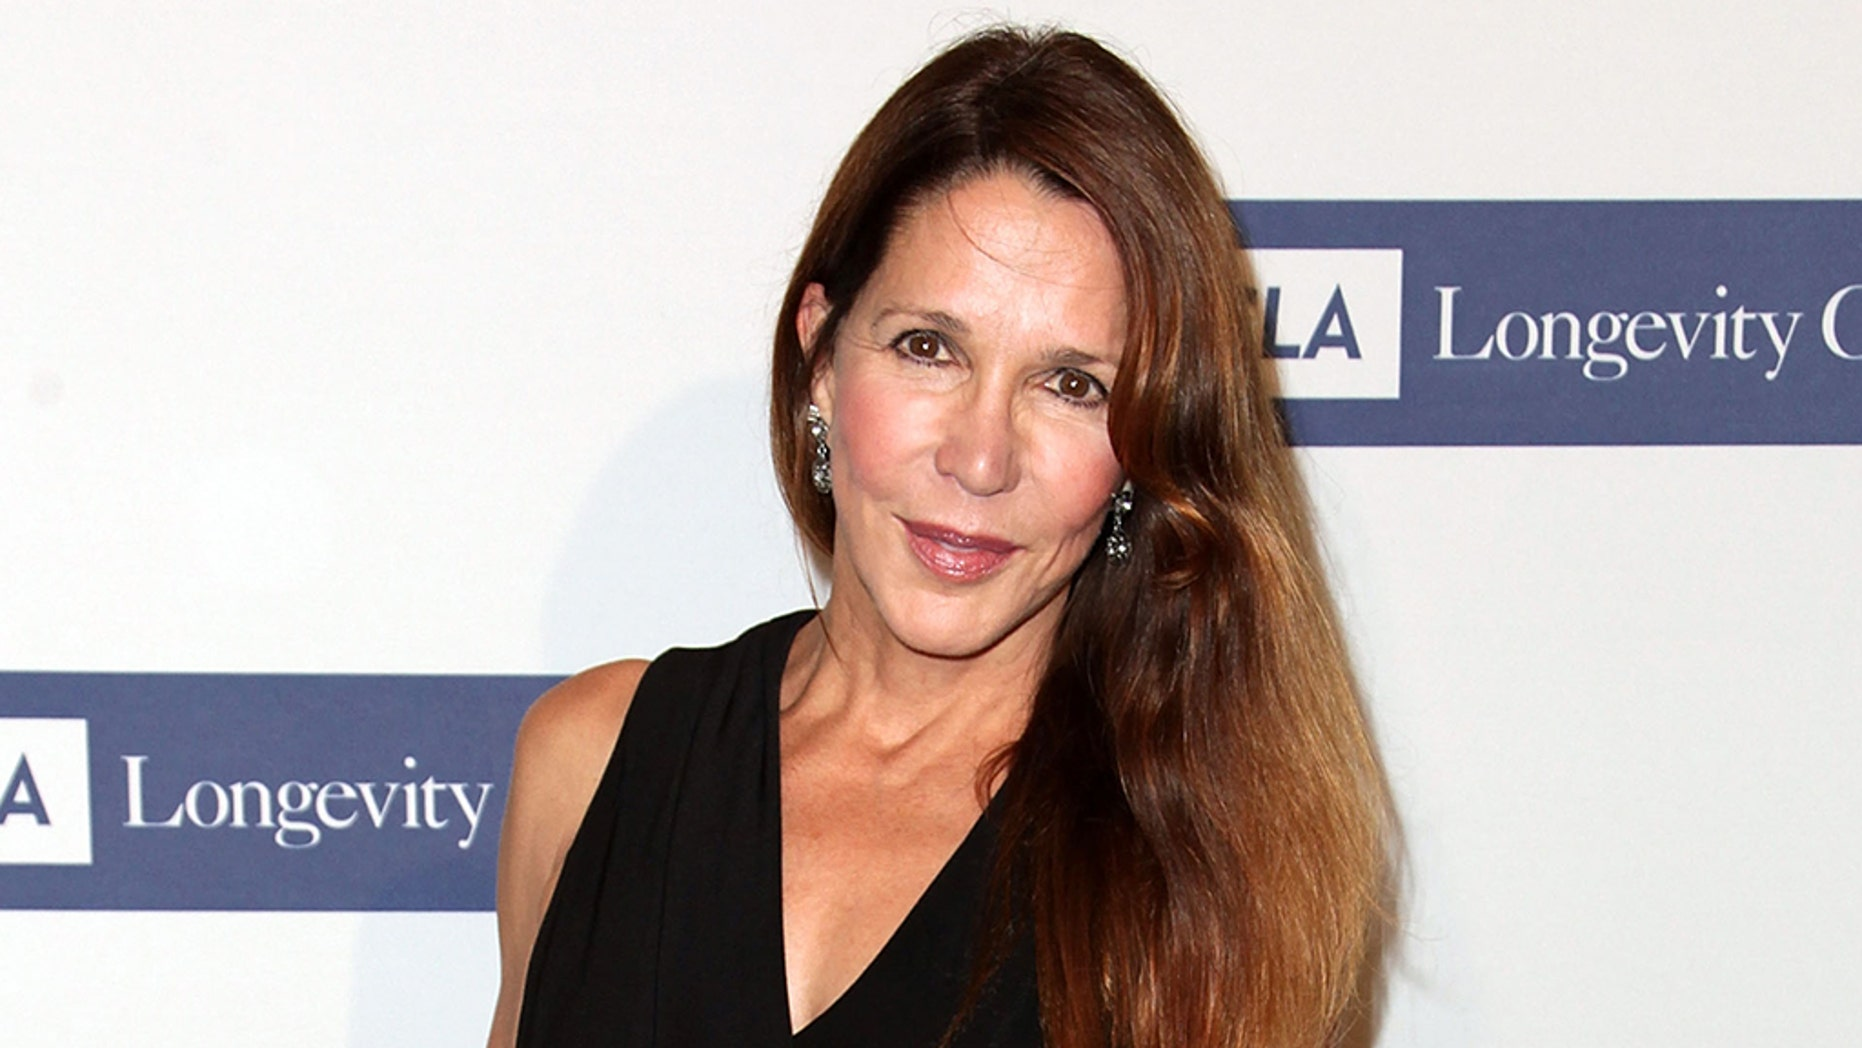 Patti Davis, the daughter of former President Ronald Reagan, sharply criticized President Trump in an interview on Tuesday (Photo by Brian To/FilmMagic)